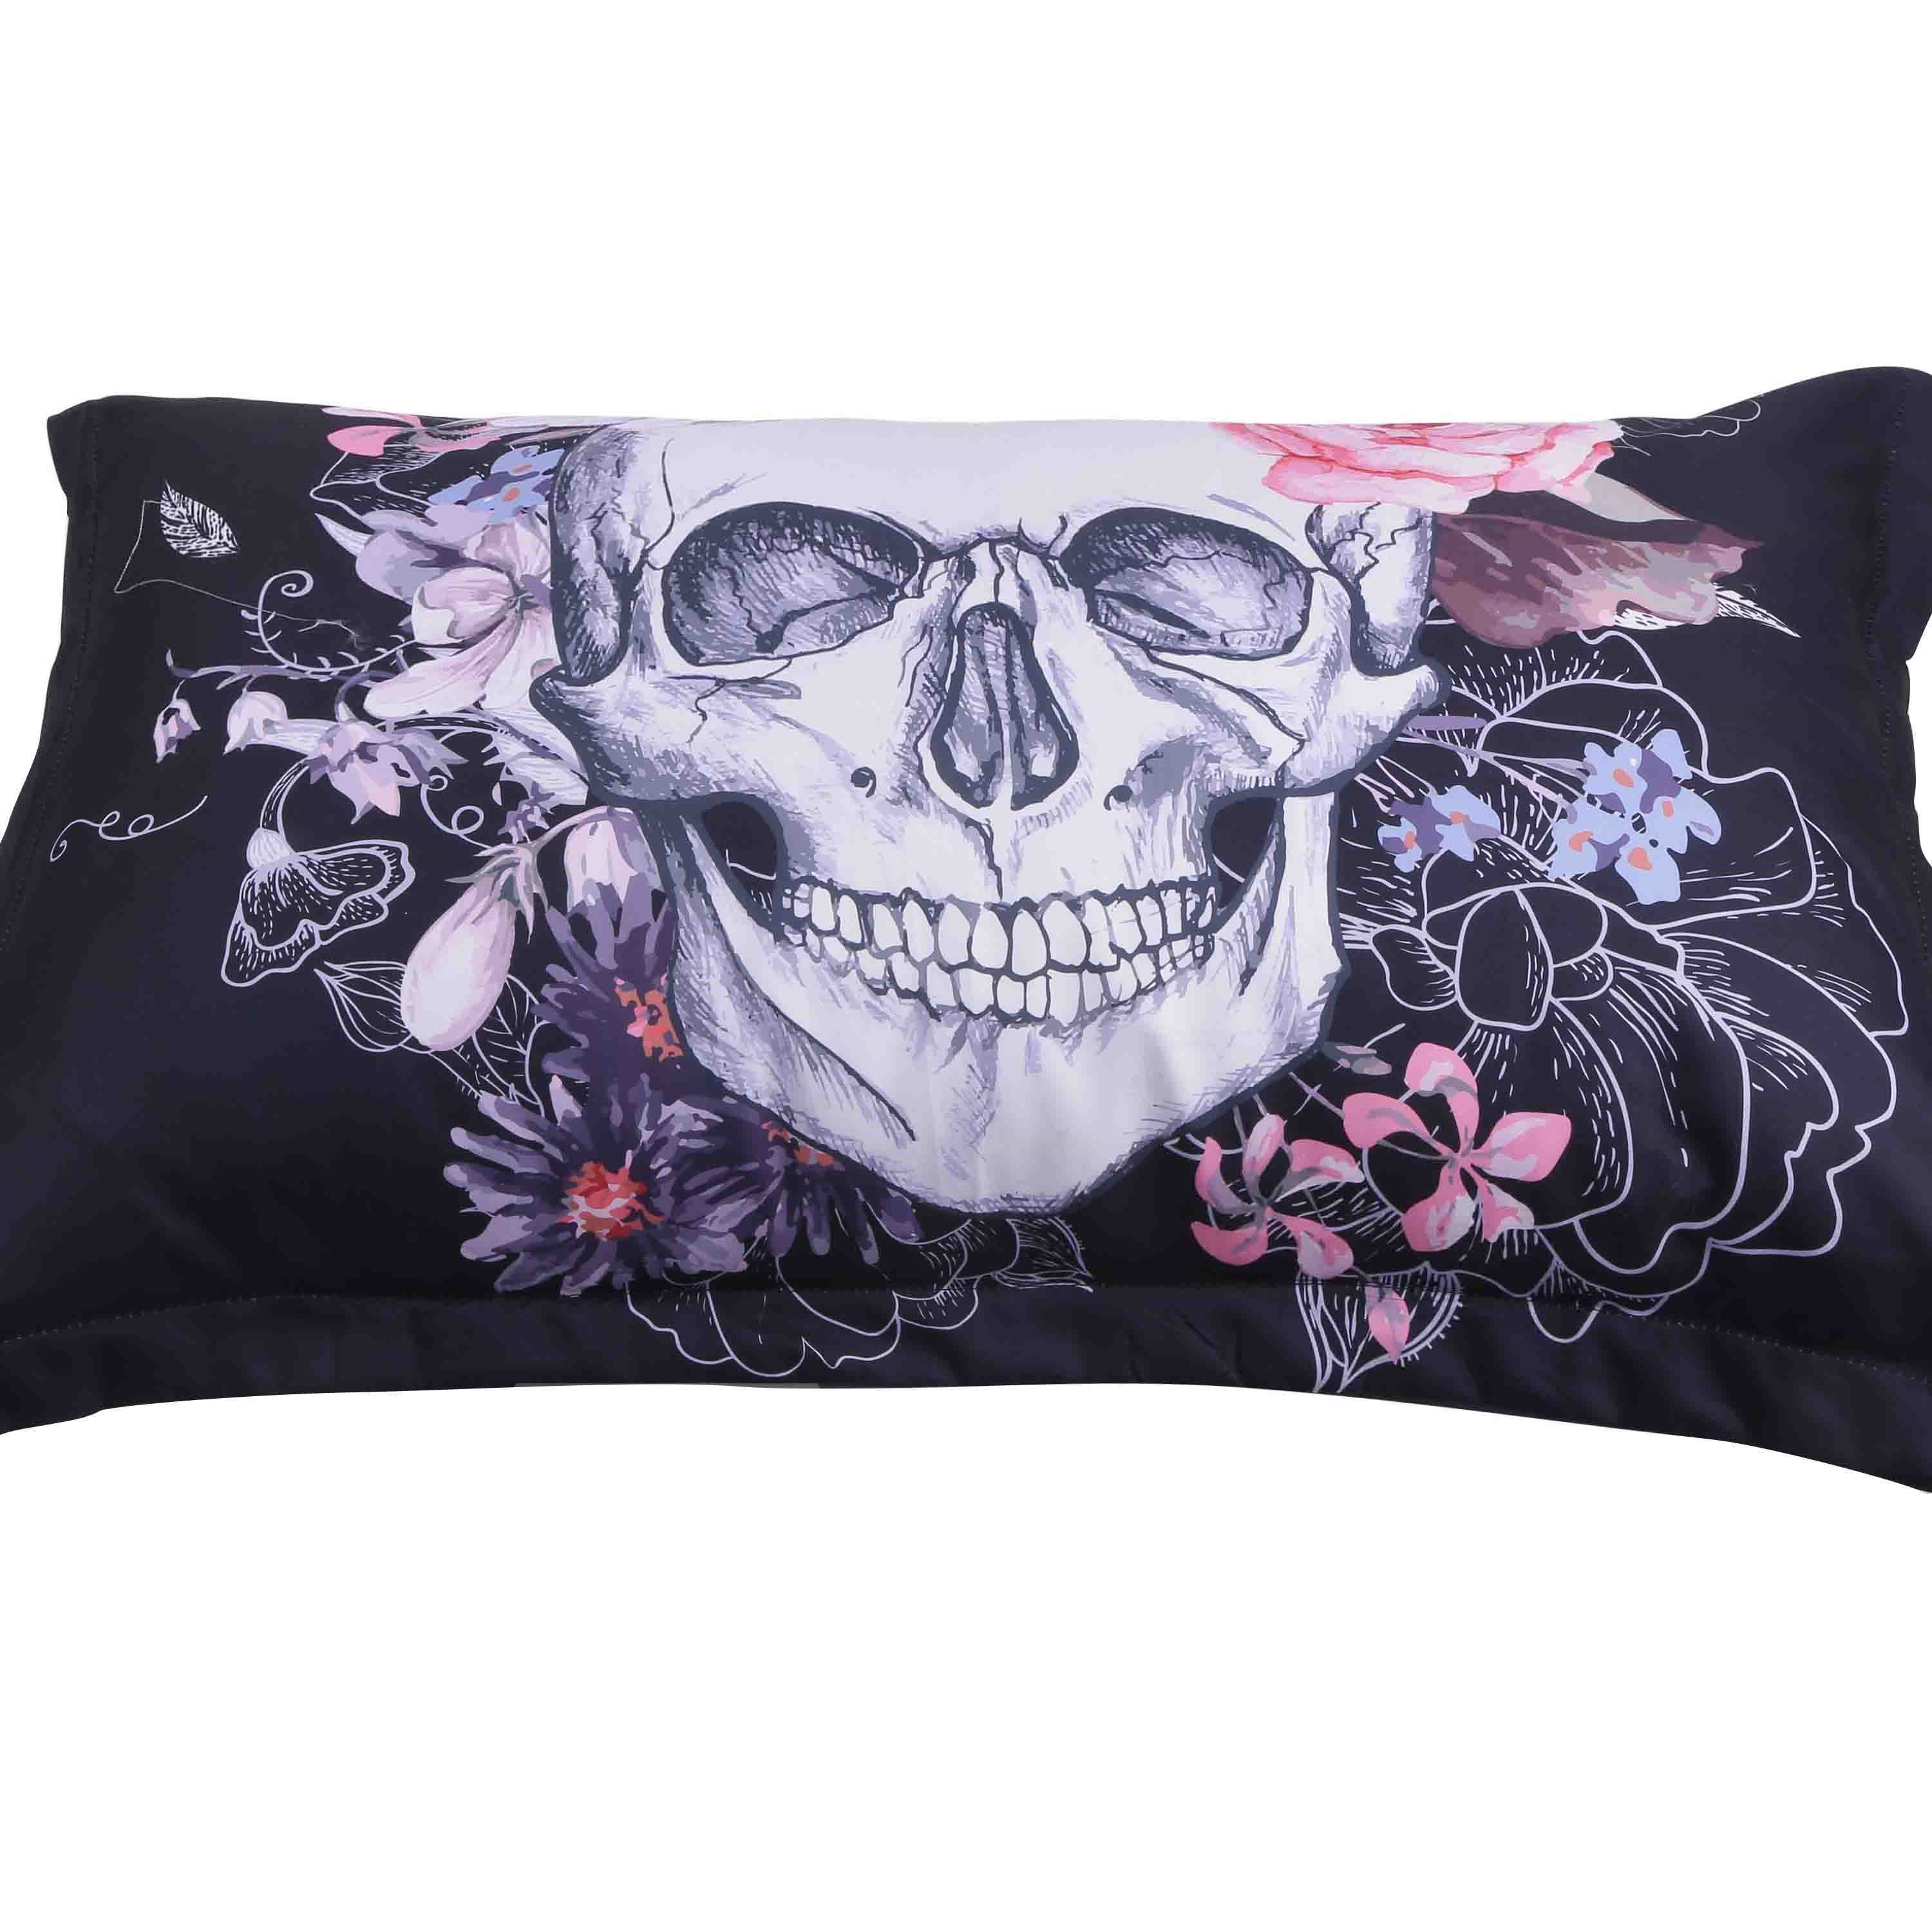 3D Skull and Flowers Printed Cotton 4-Piece Black Bedding Sets/Duvet Covers